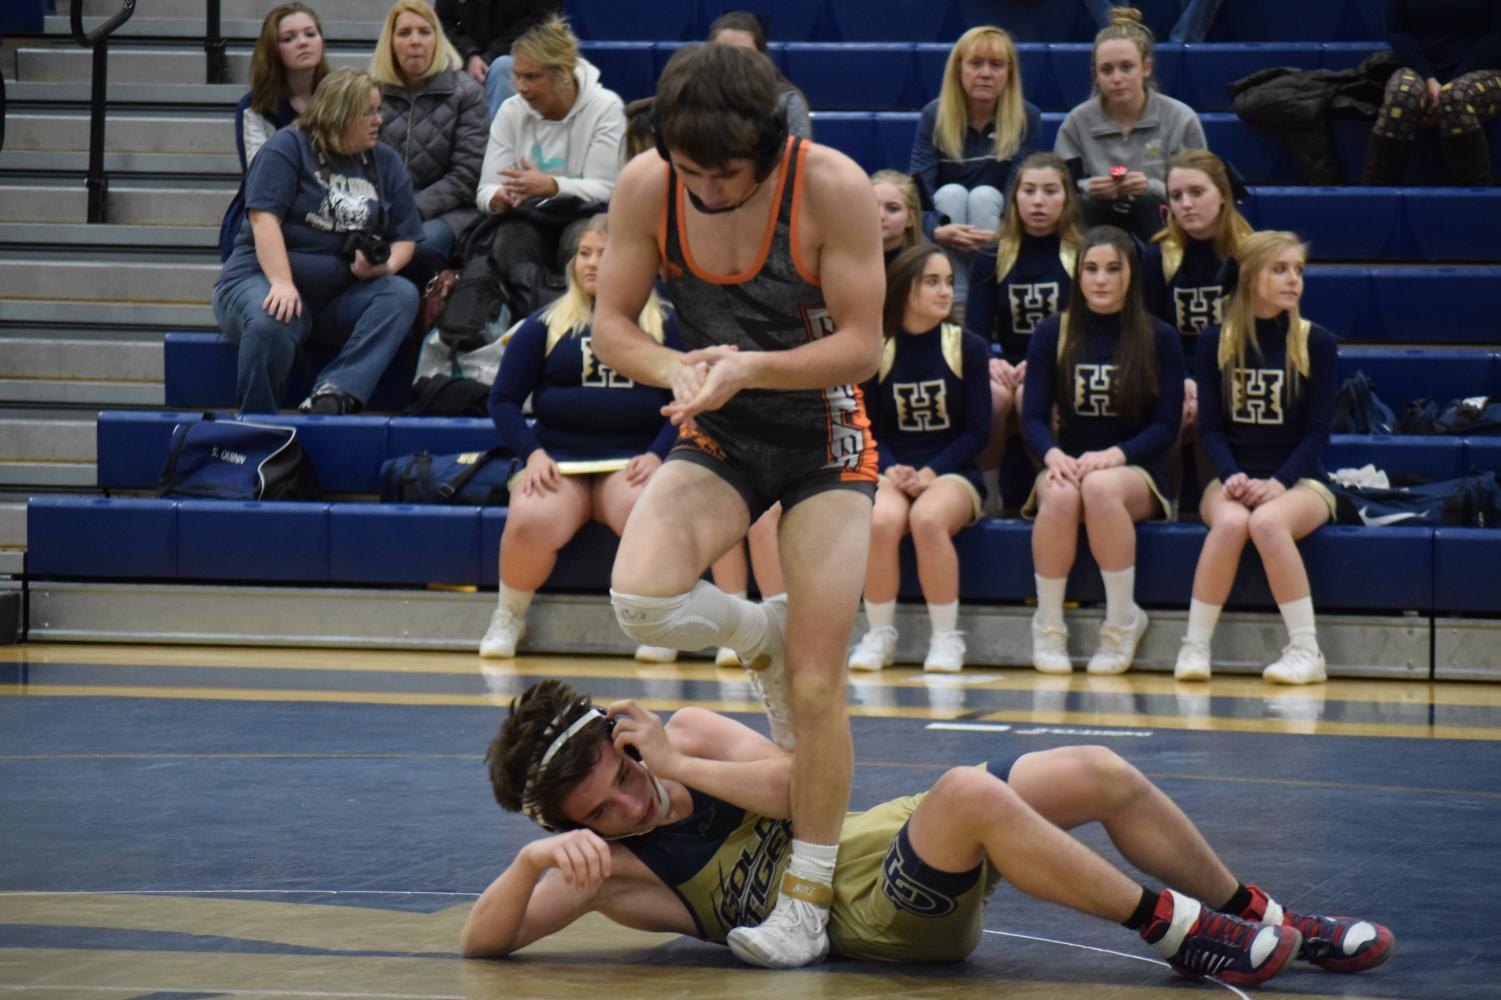 Tyrone sophomore Hunter Walk dusts himself off after another pin.